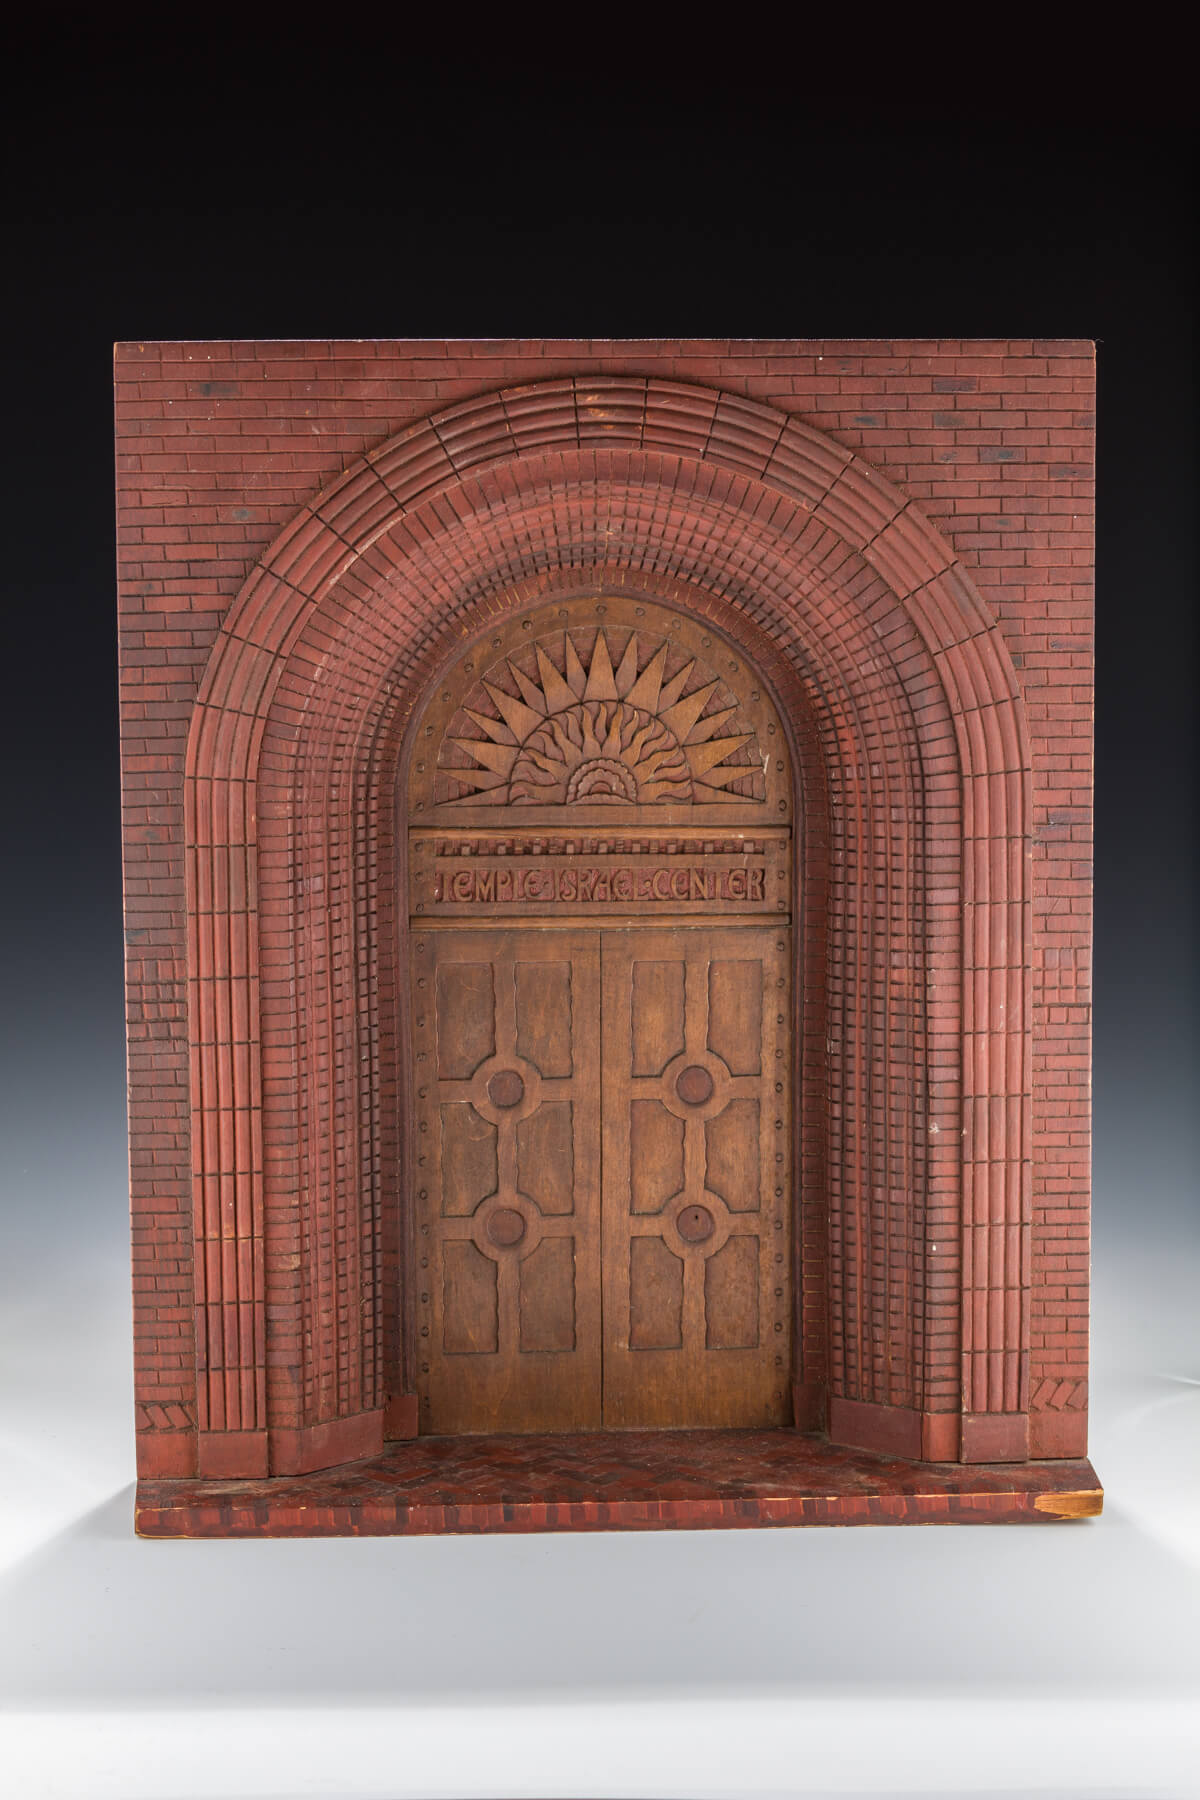 069. A Hand-Carved Model of a Synagogue Entrance